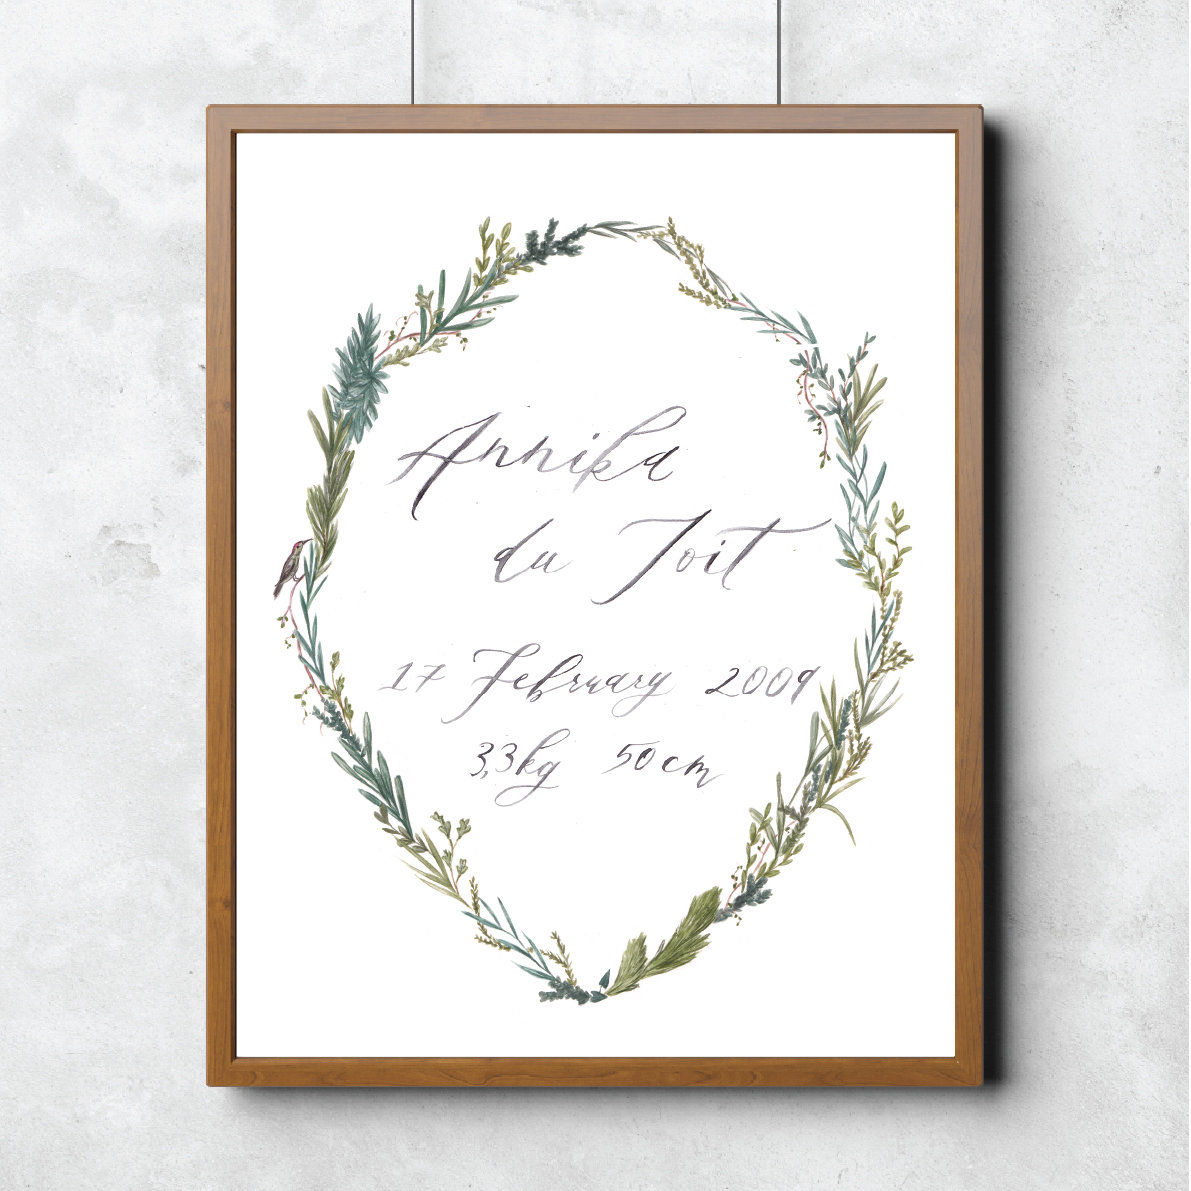 Wreath Calligraphy Print 00009